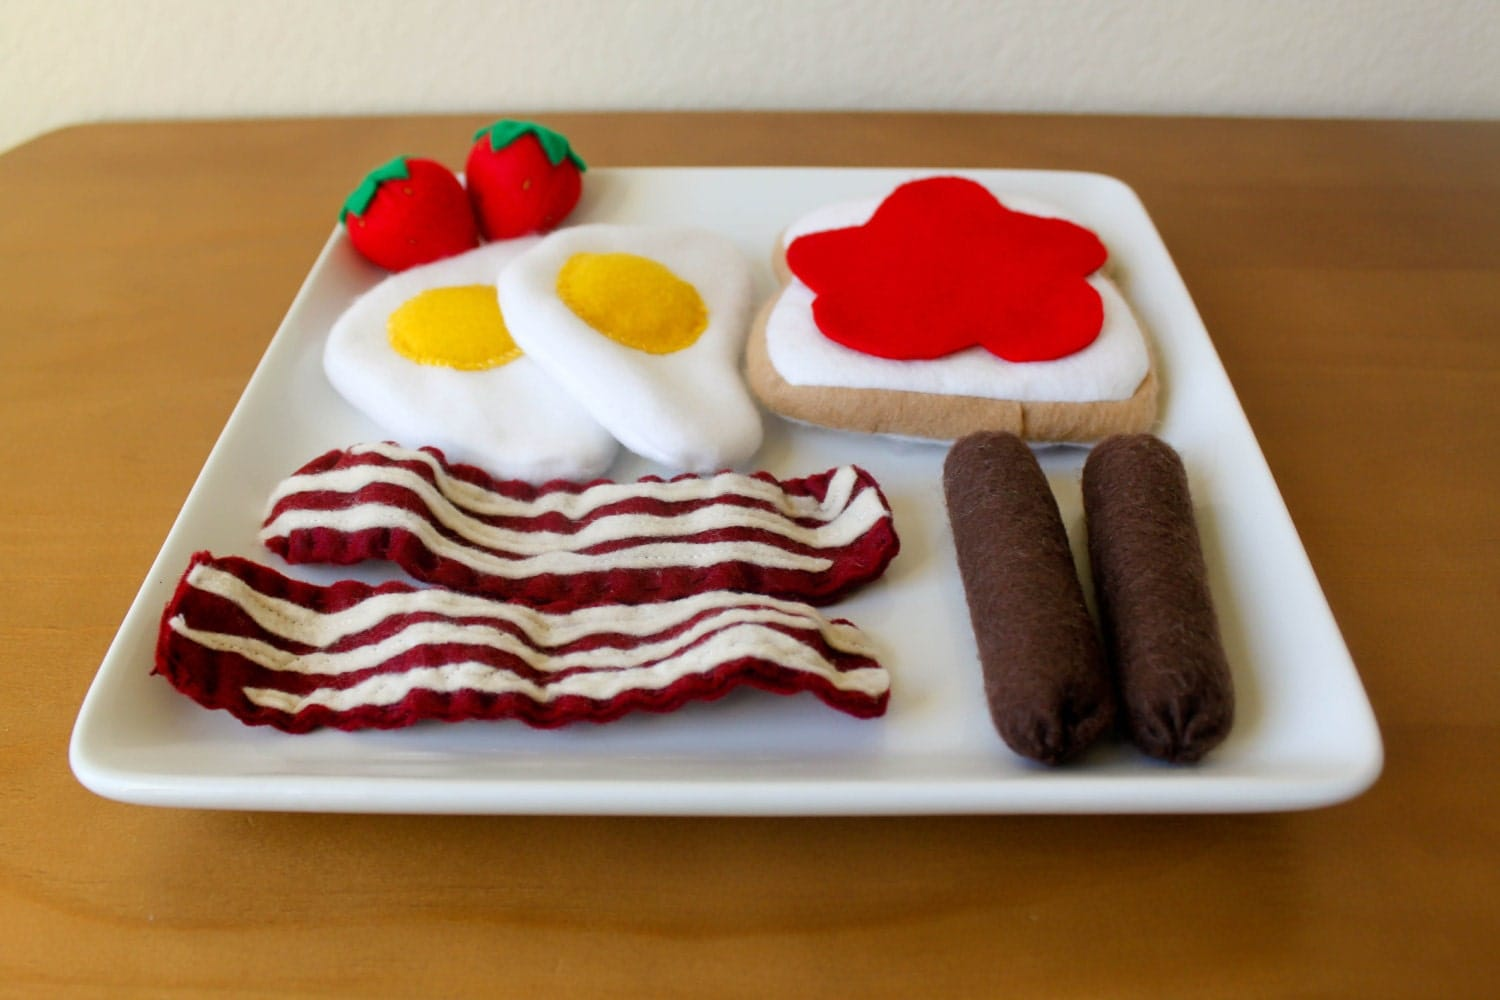 Felt Food - Eggs w/ Meats and Toast Play Food